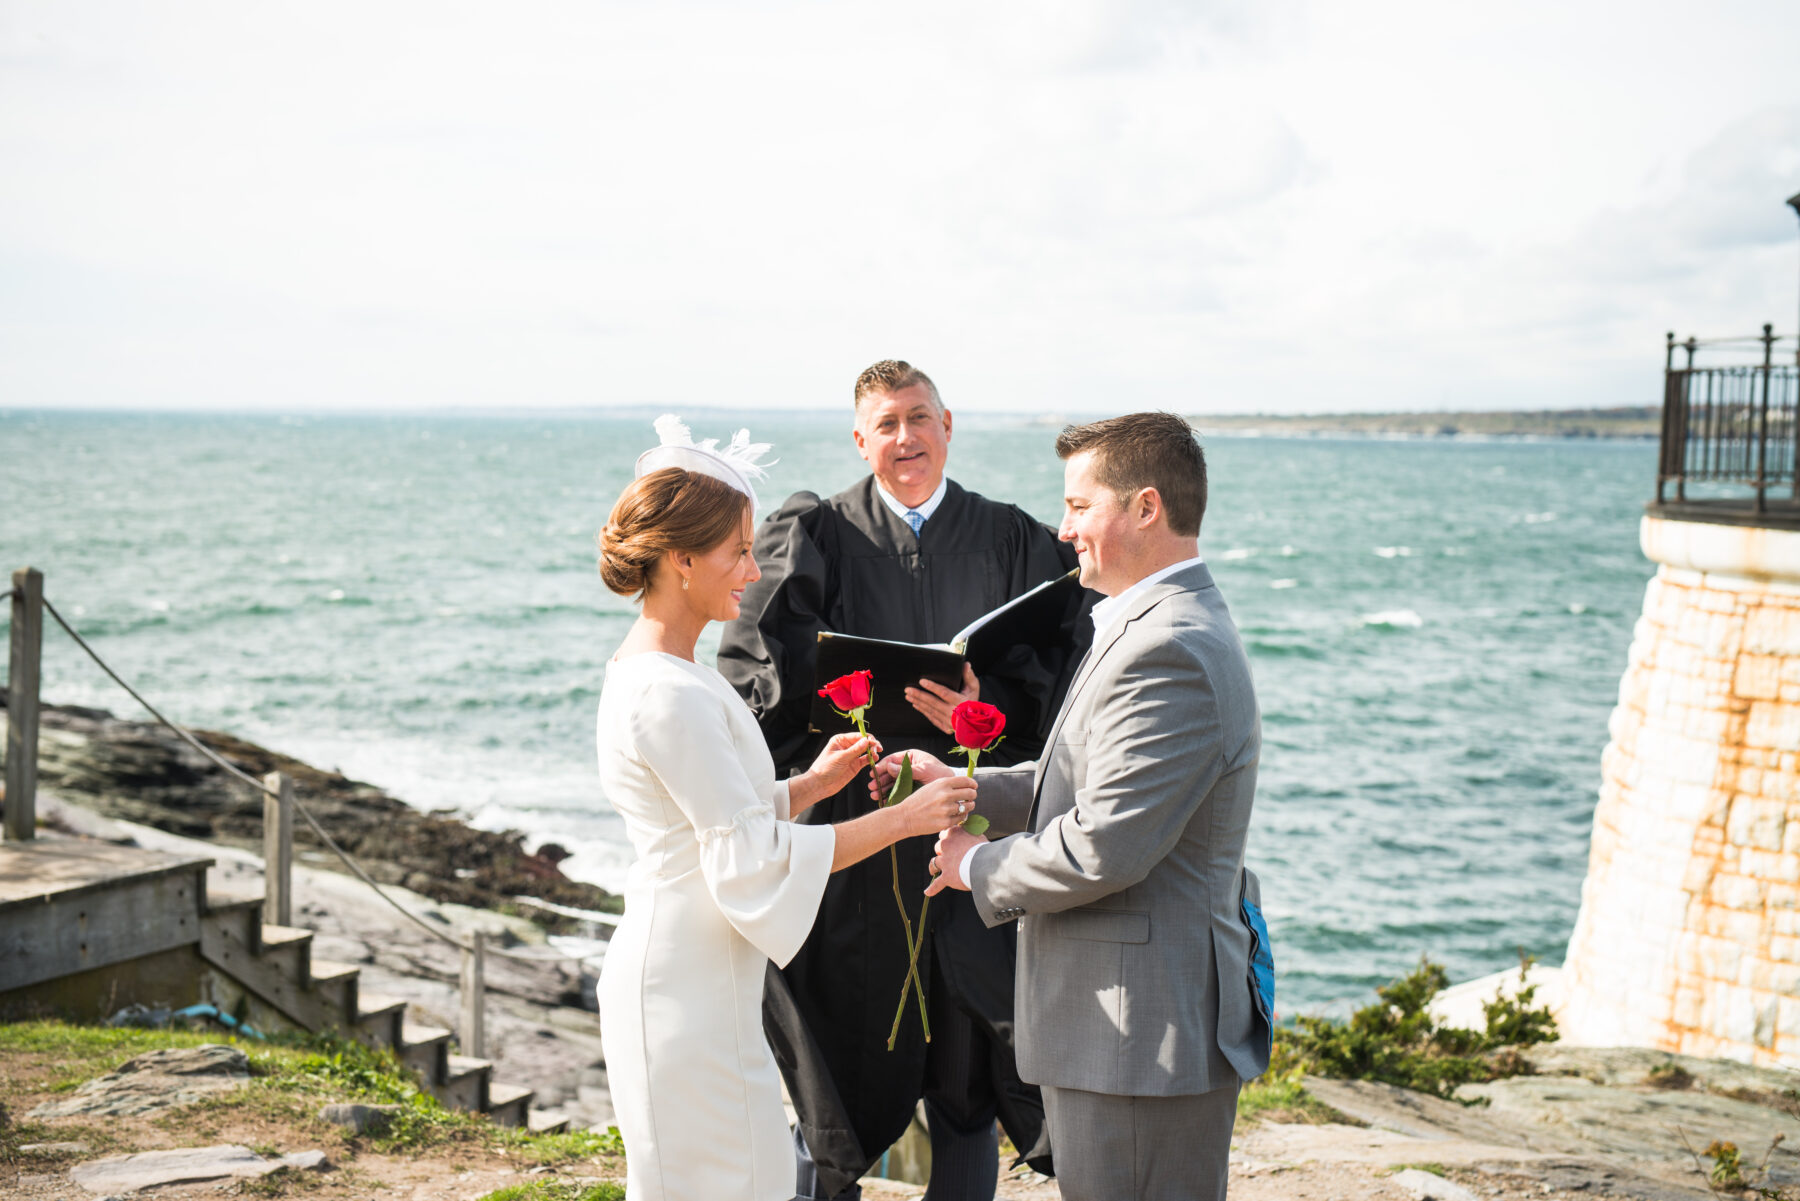 Castle Hill Newport Elopement Danielle and Mike Blueflash Photography 5